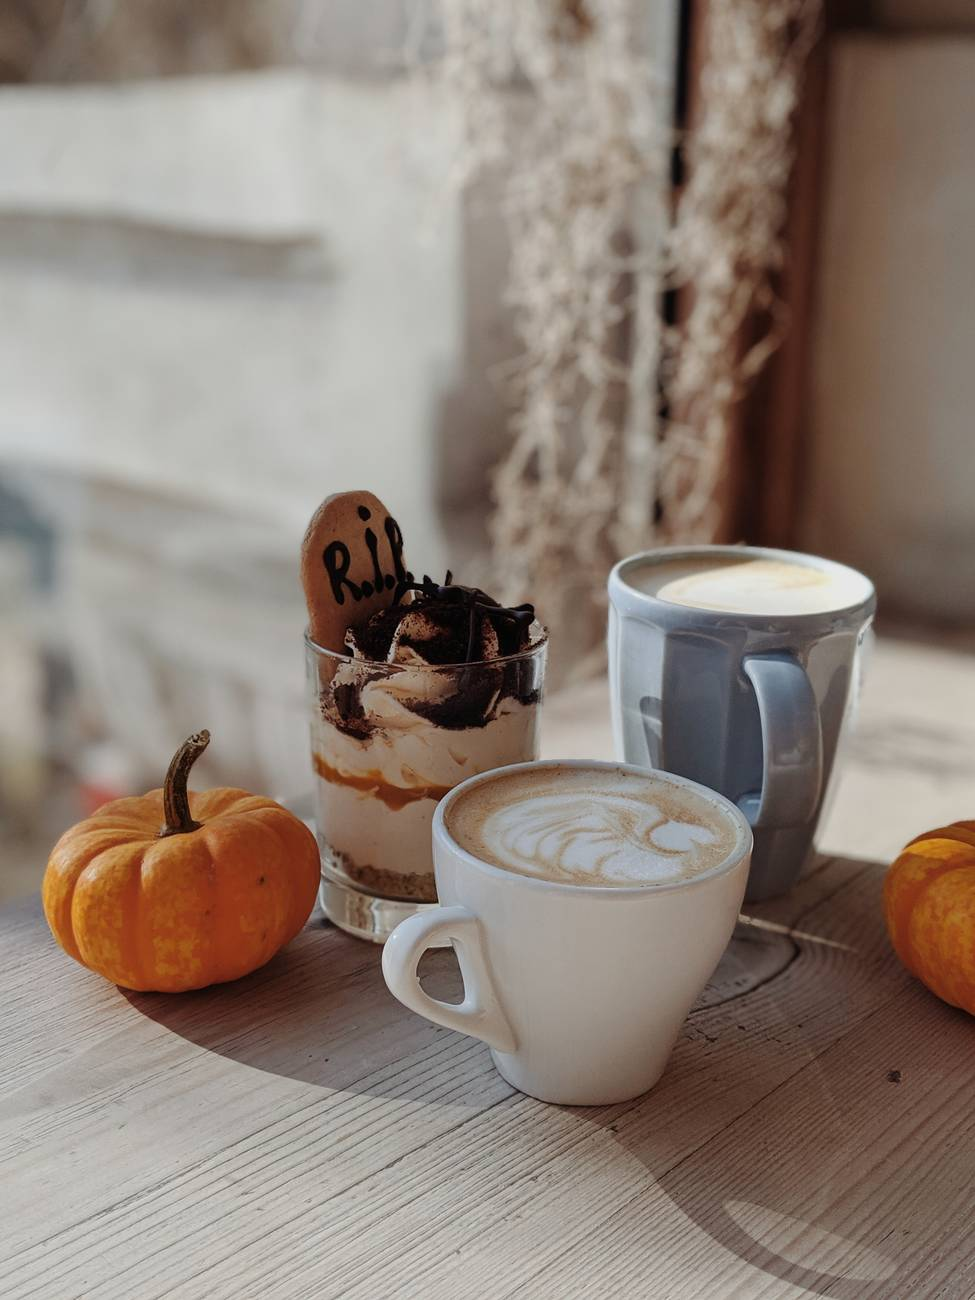 Picture of cups of coffee with foam and small pumpkins.